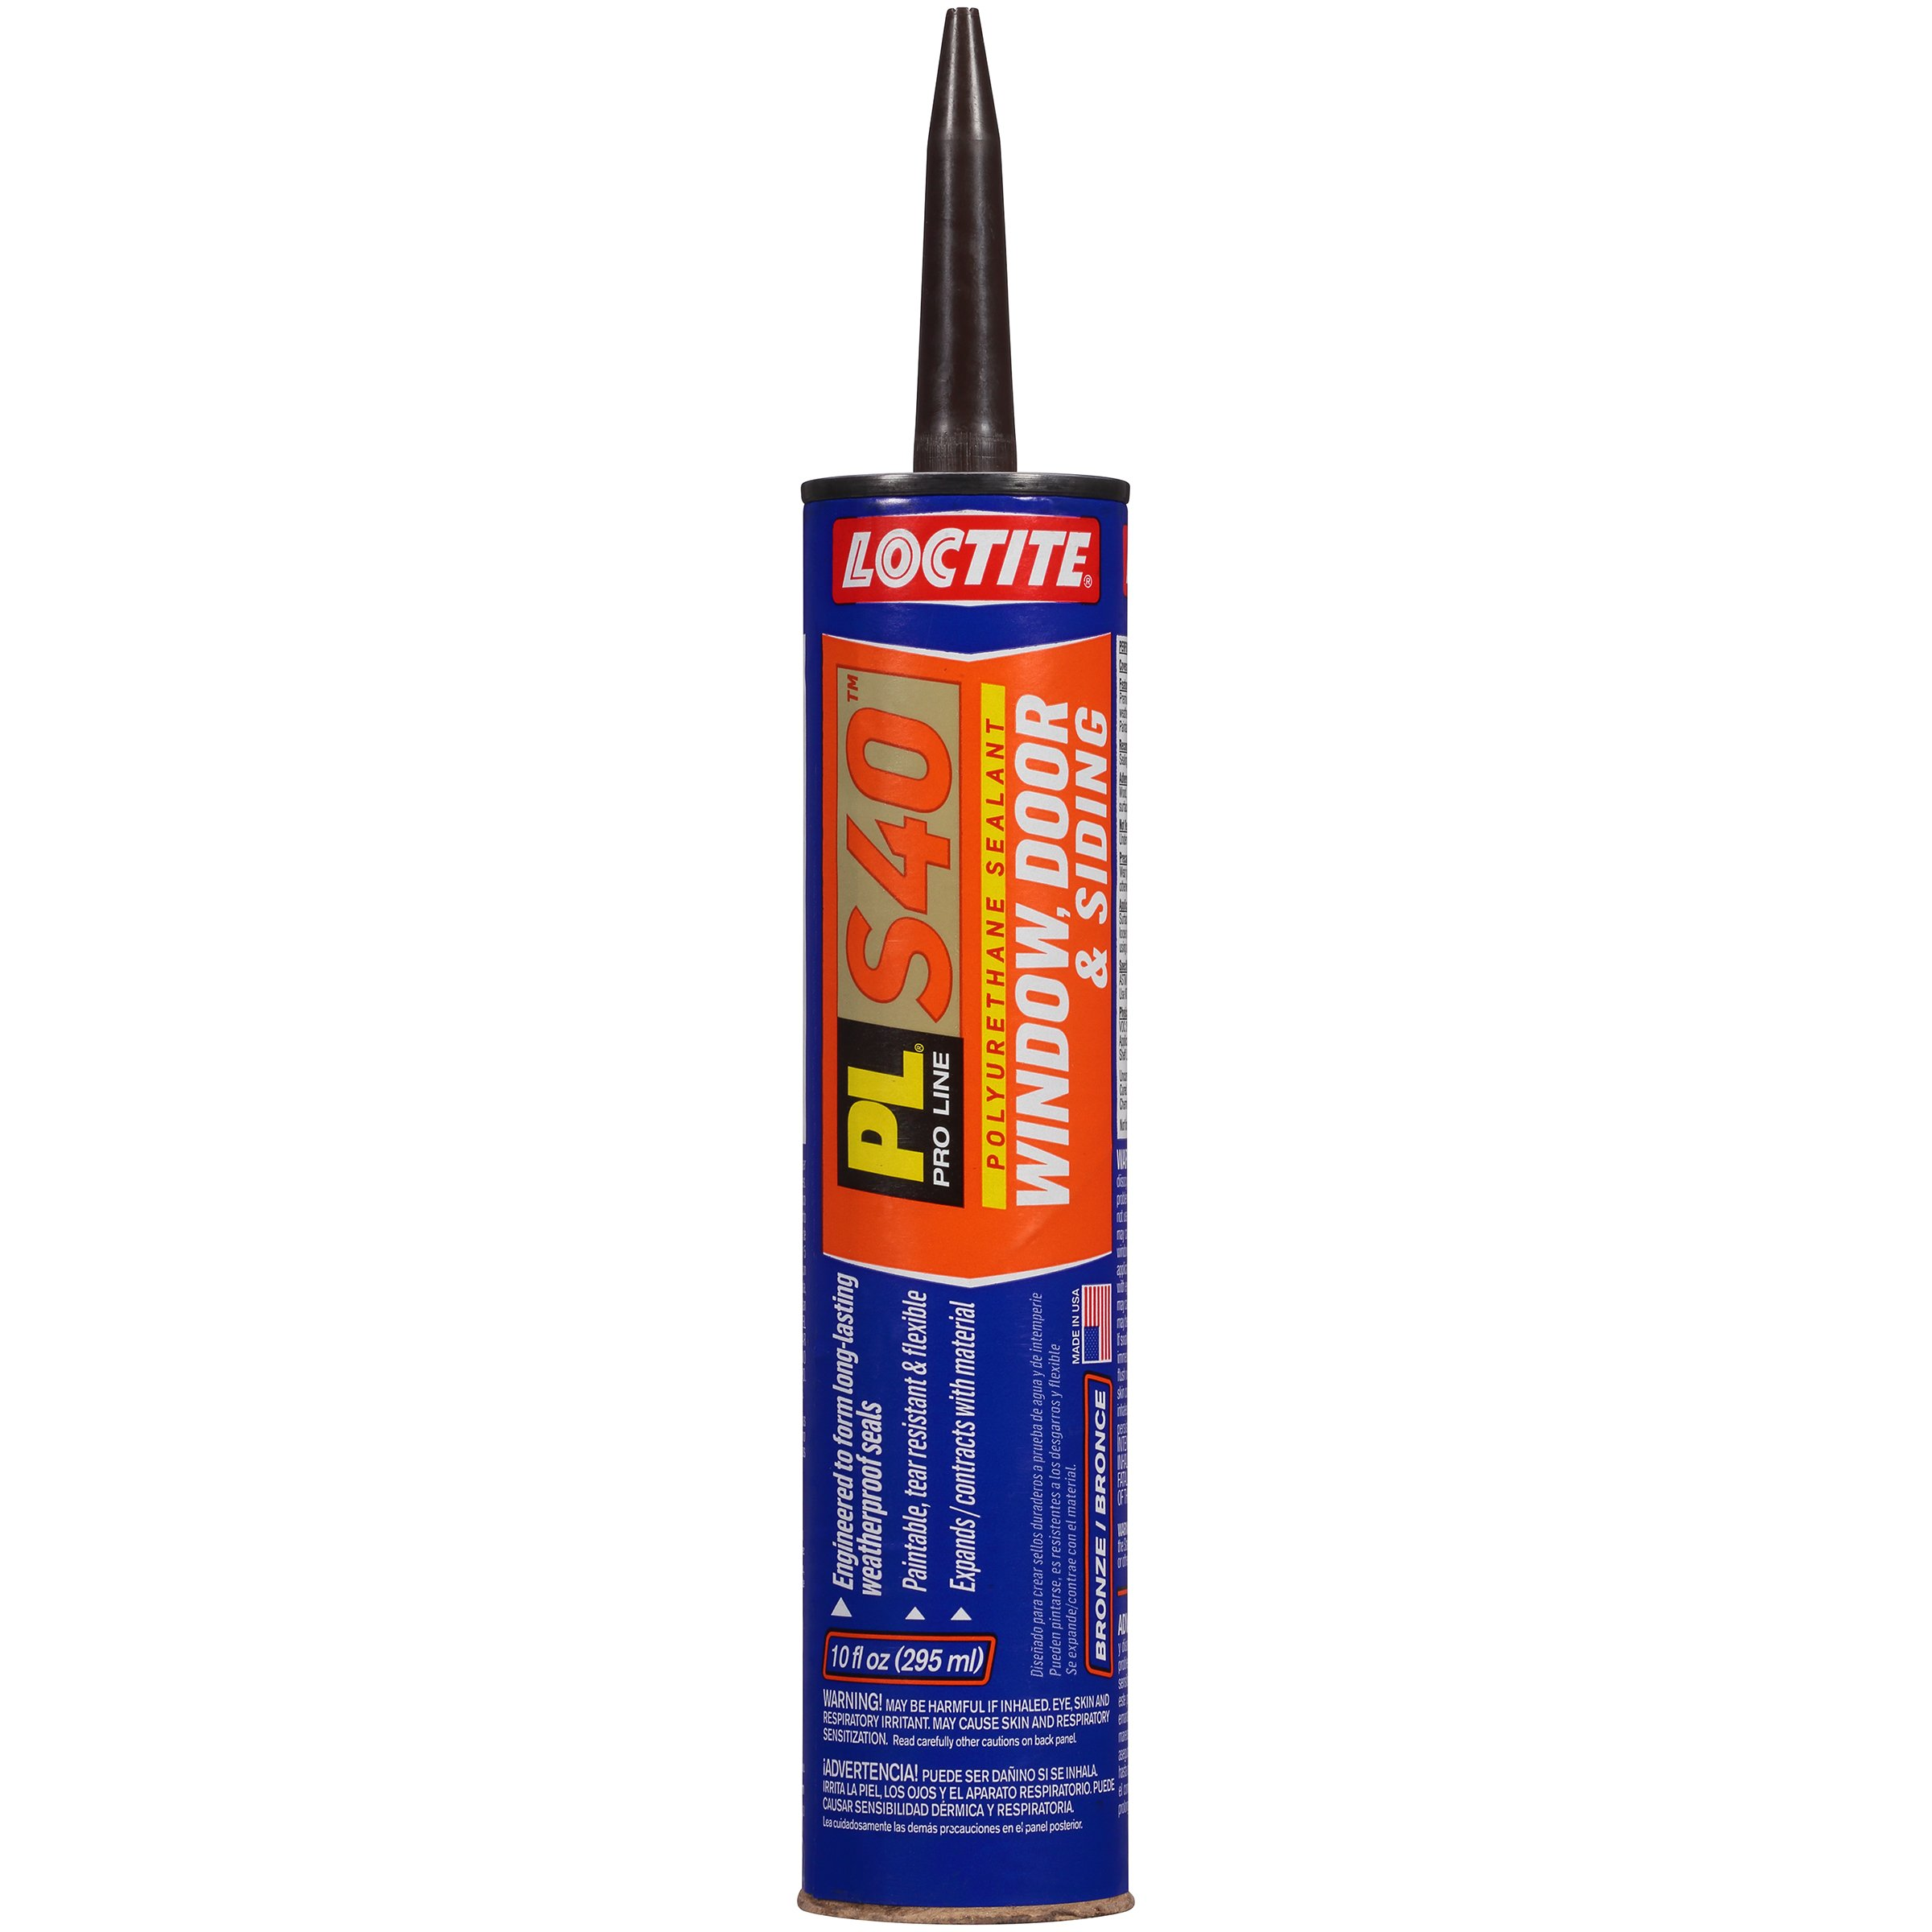 Loctite PL S40 Bronze Window, Door and Siding Polyurethane Sealant 10-Ounce Cartridge (1618175) by PL